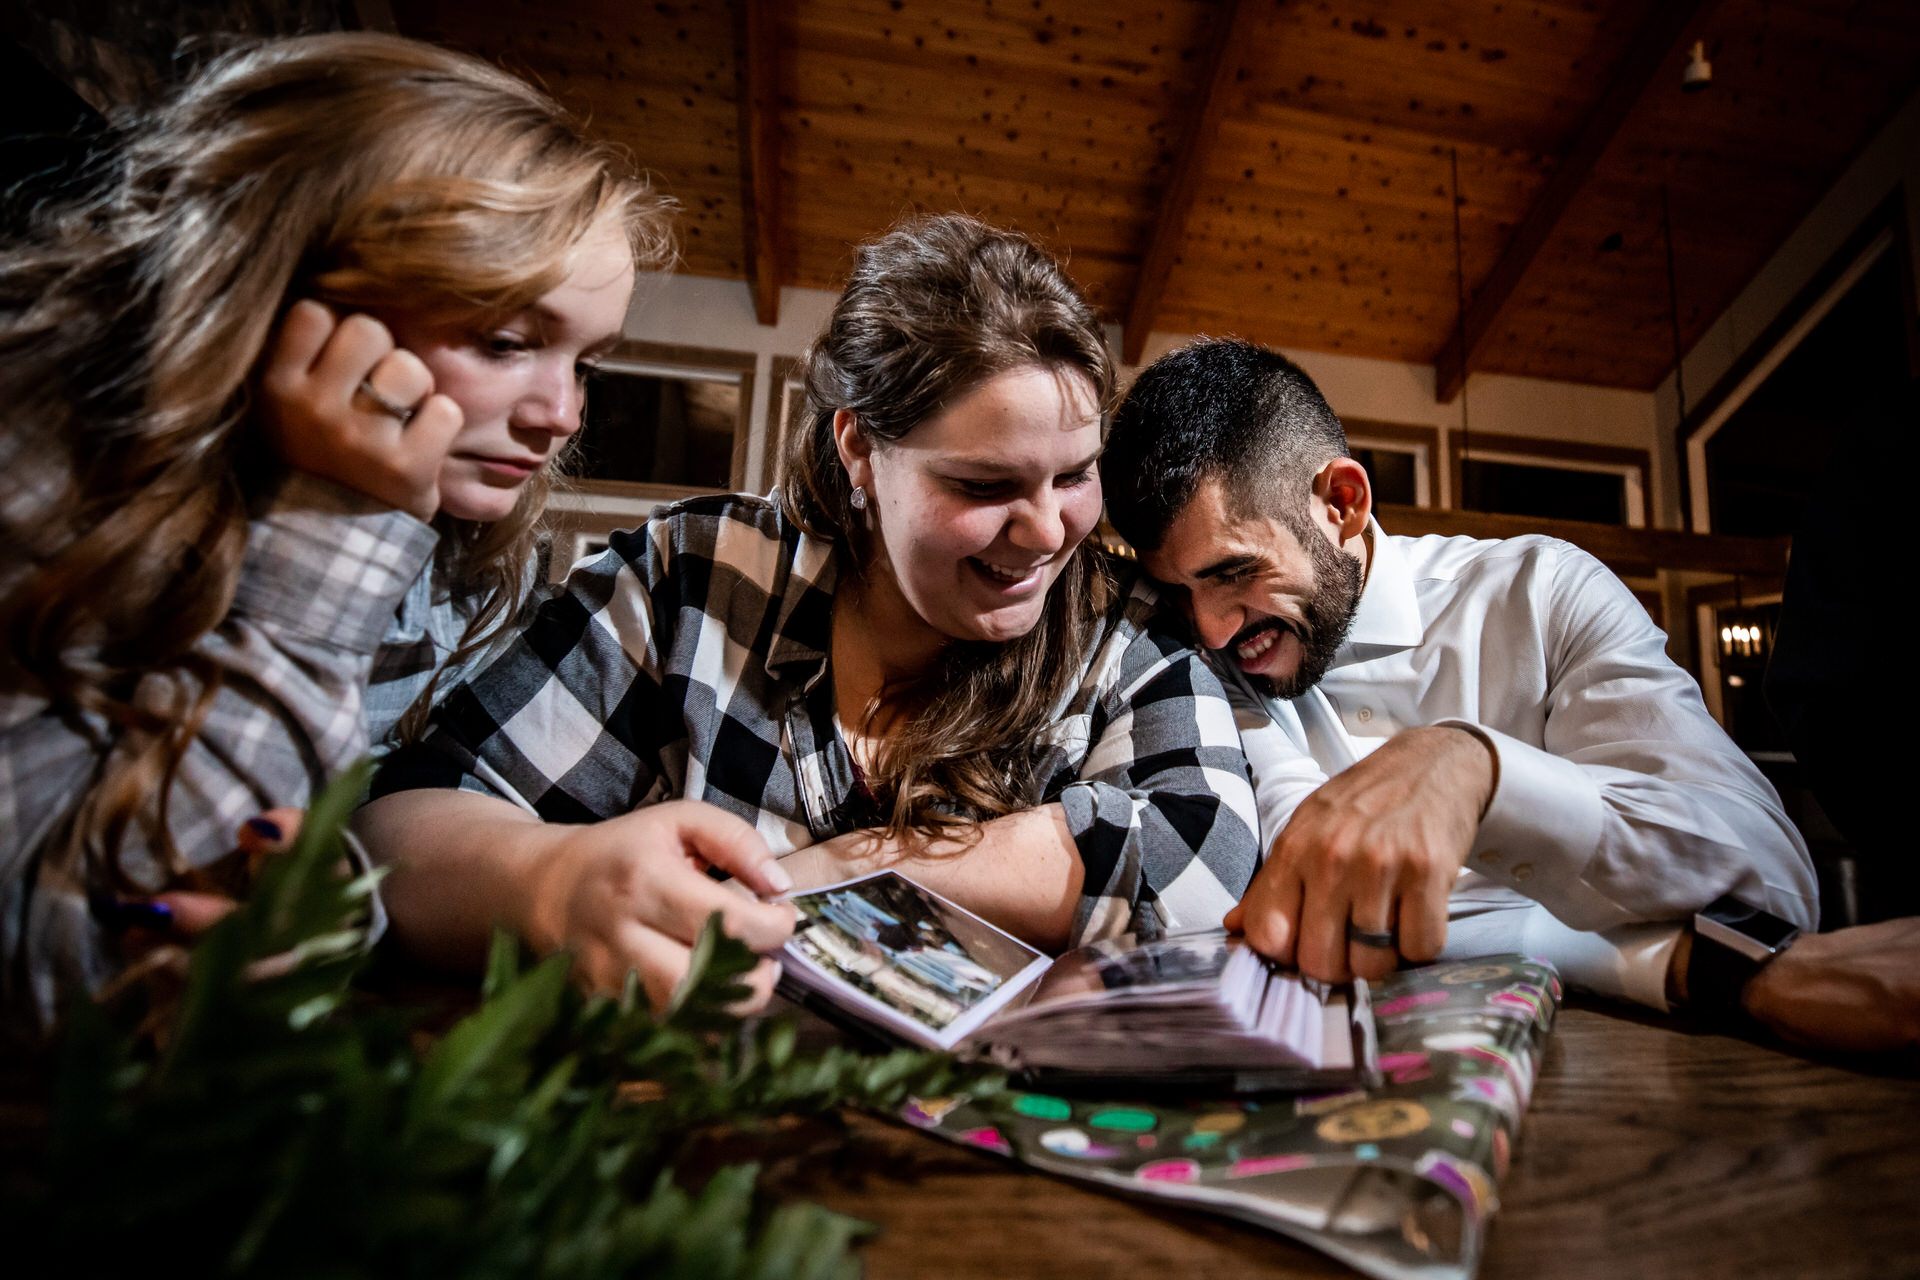 Balsam Lake, Wisconsin - The eloping couple is looking through an old family photo album.